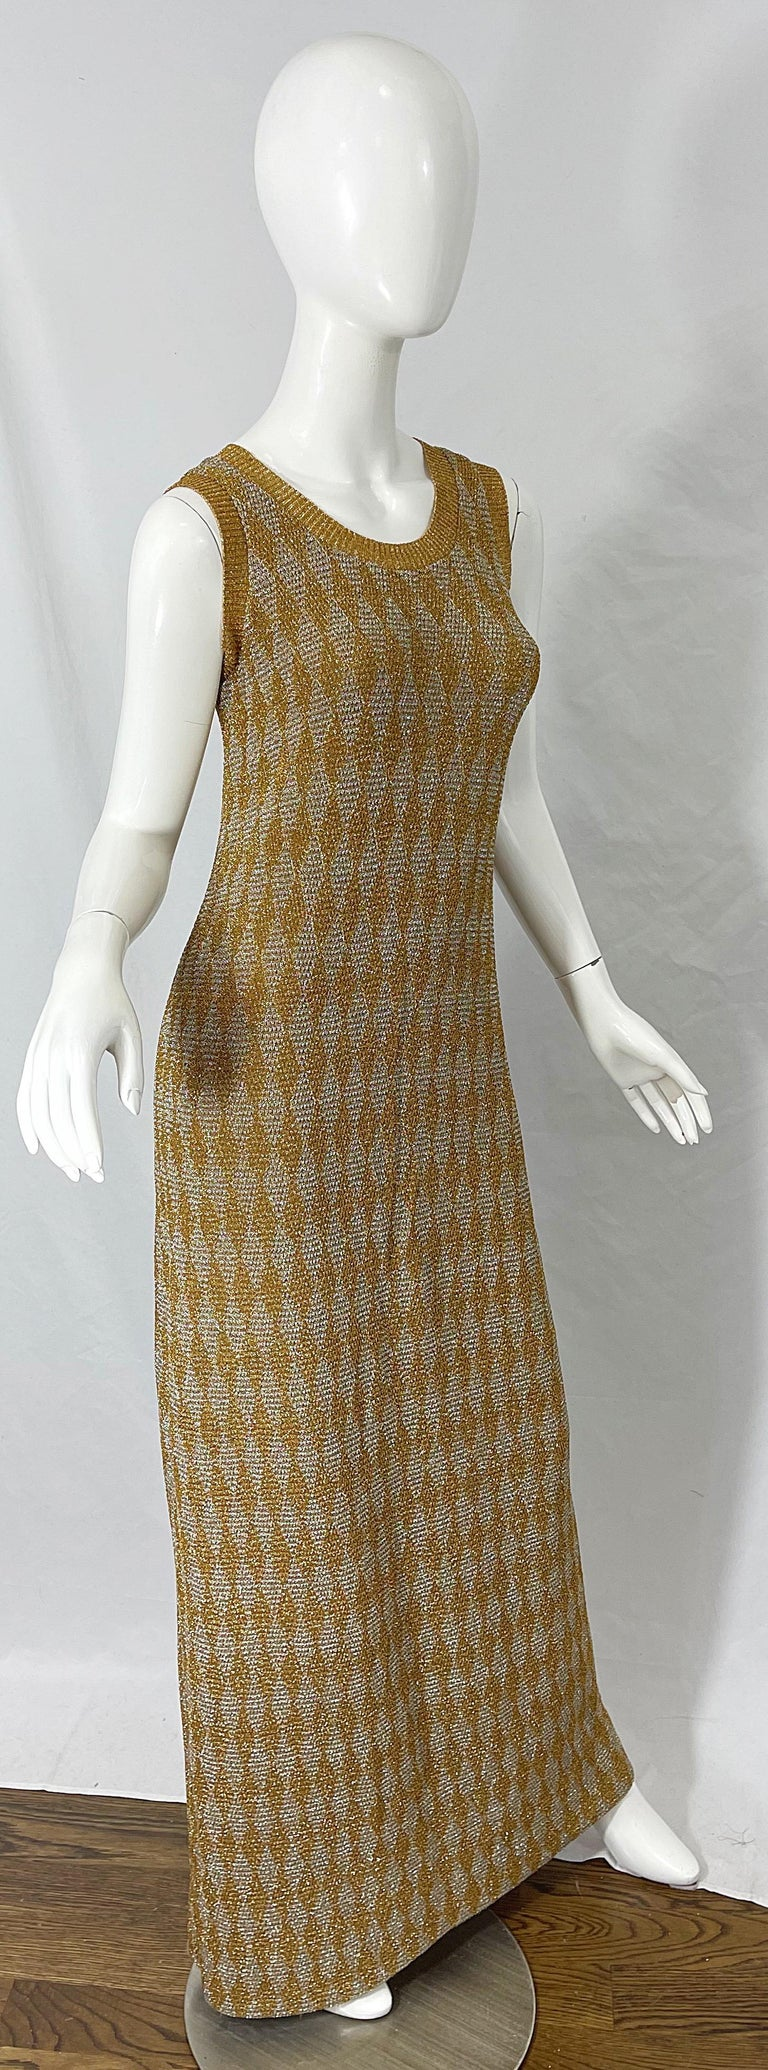 1970s Halston NWT Gold + Silver 70s Vintage Lurex Gown + Duster Cardigan For Sale 9